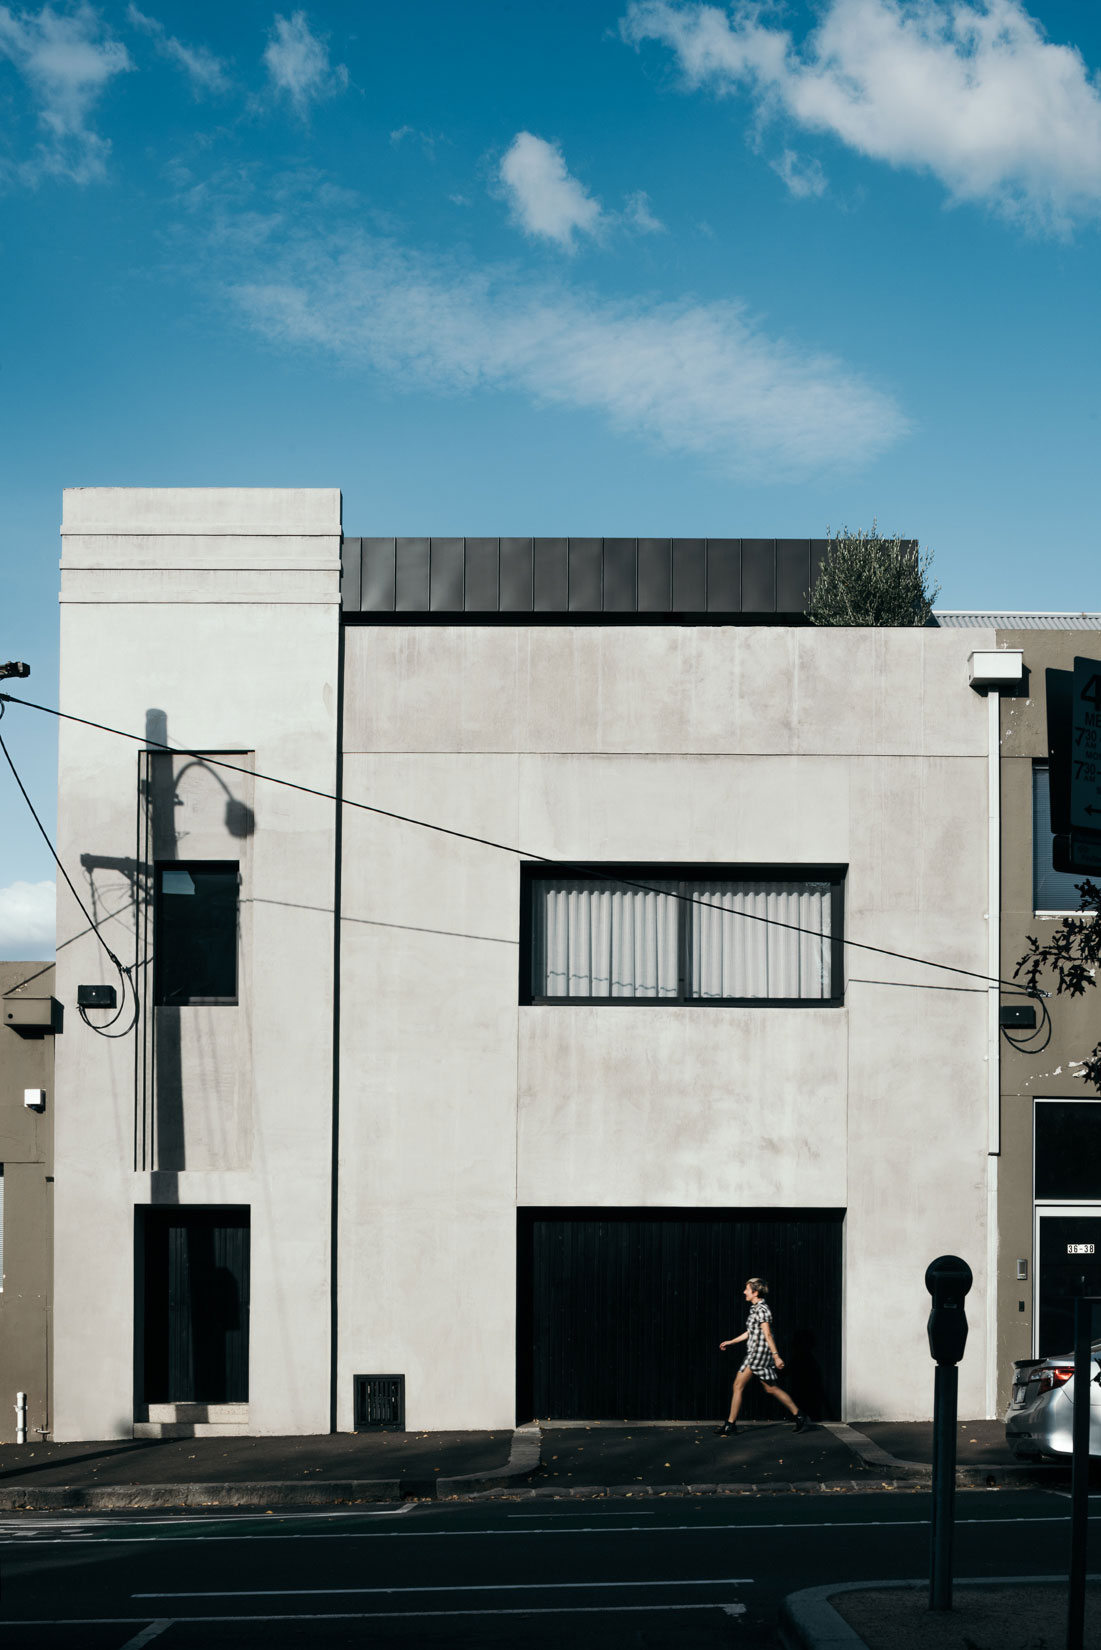 Leveson Street Residence by Ha. Photo by Dan Hocking | Yellowtrace